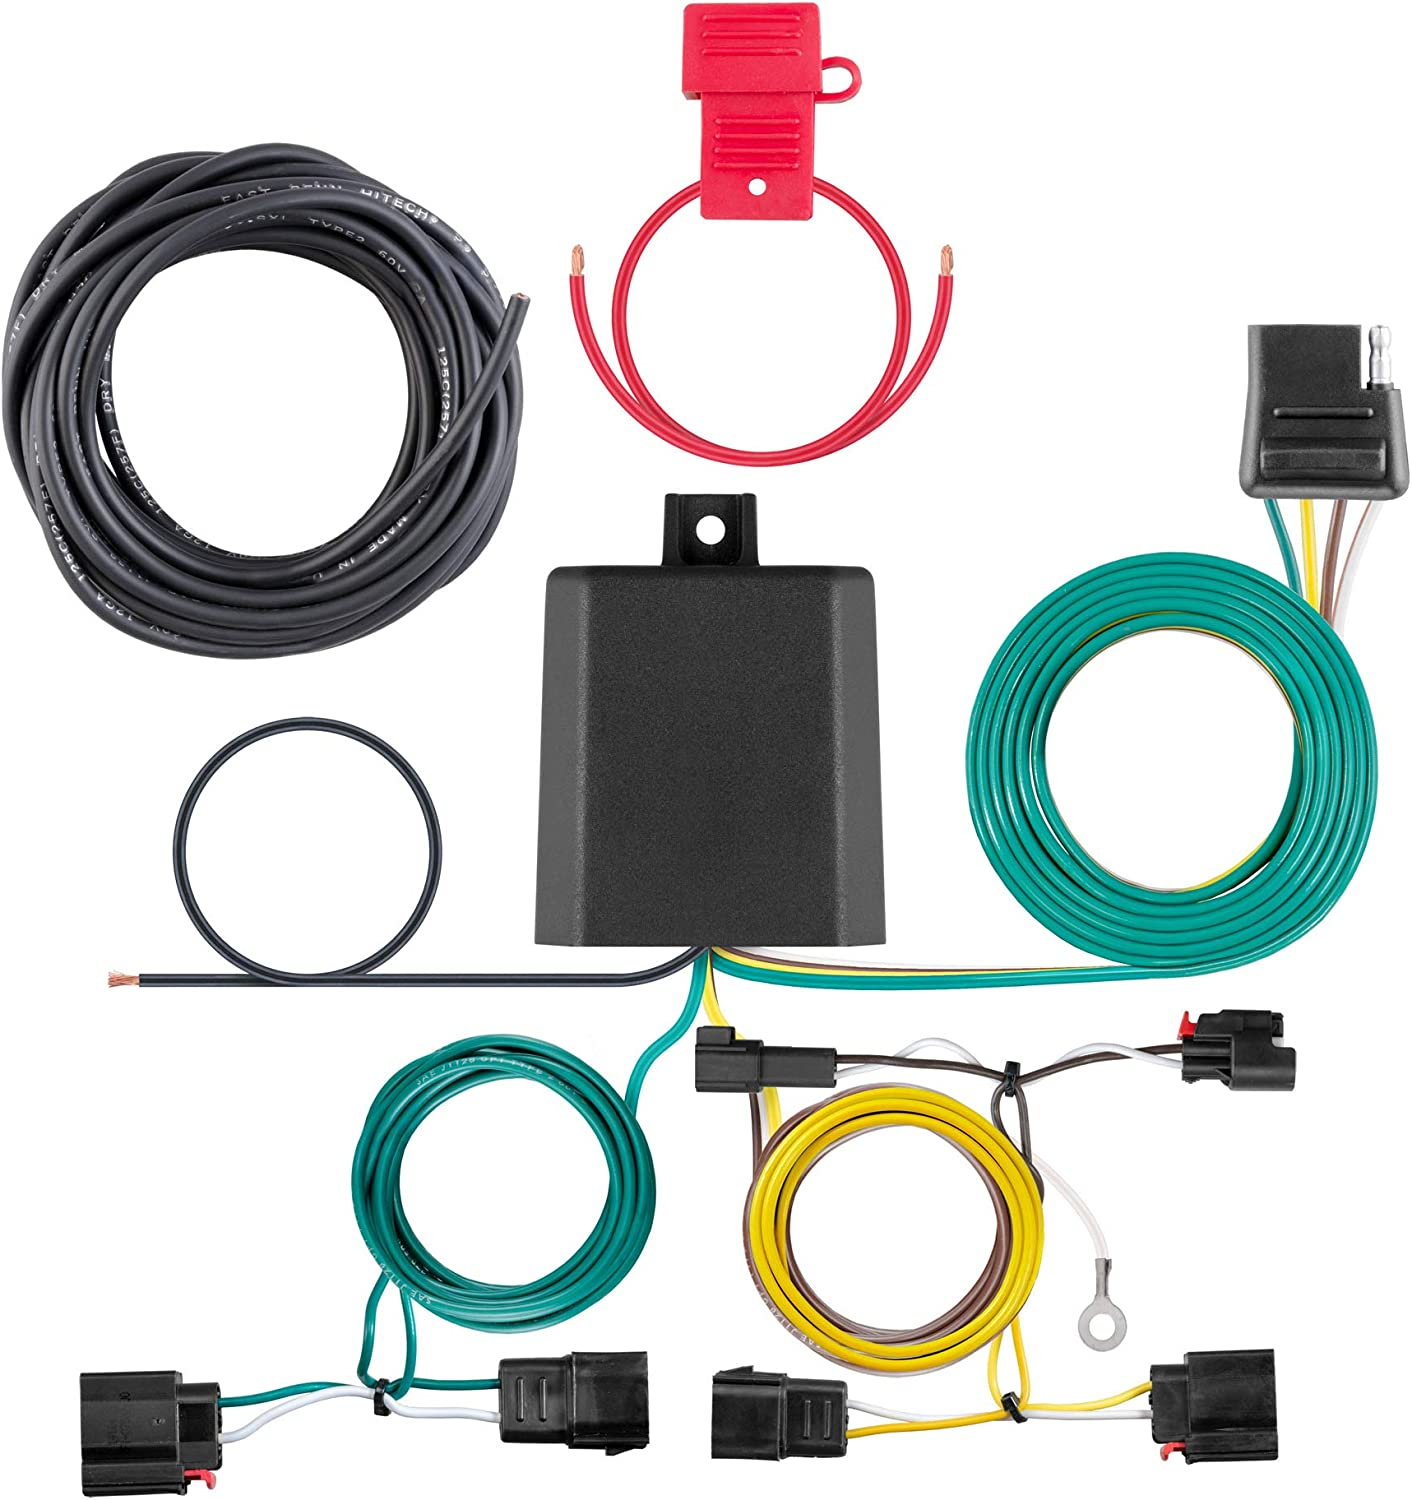 CURT 56426 Vehicle-Side Custom 4-Pin Trailer Wiring Harness, Fit